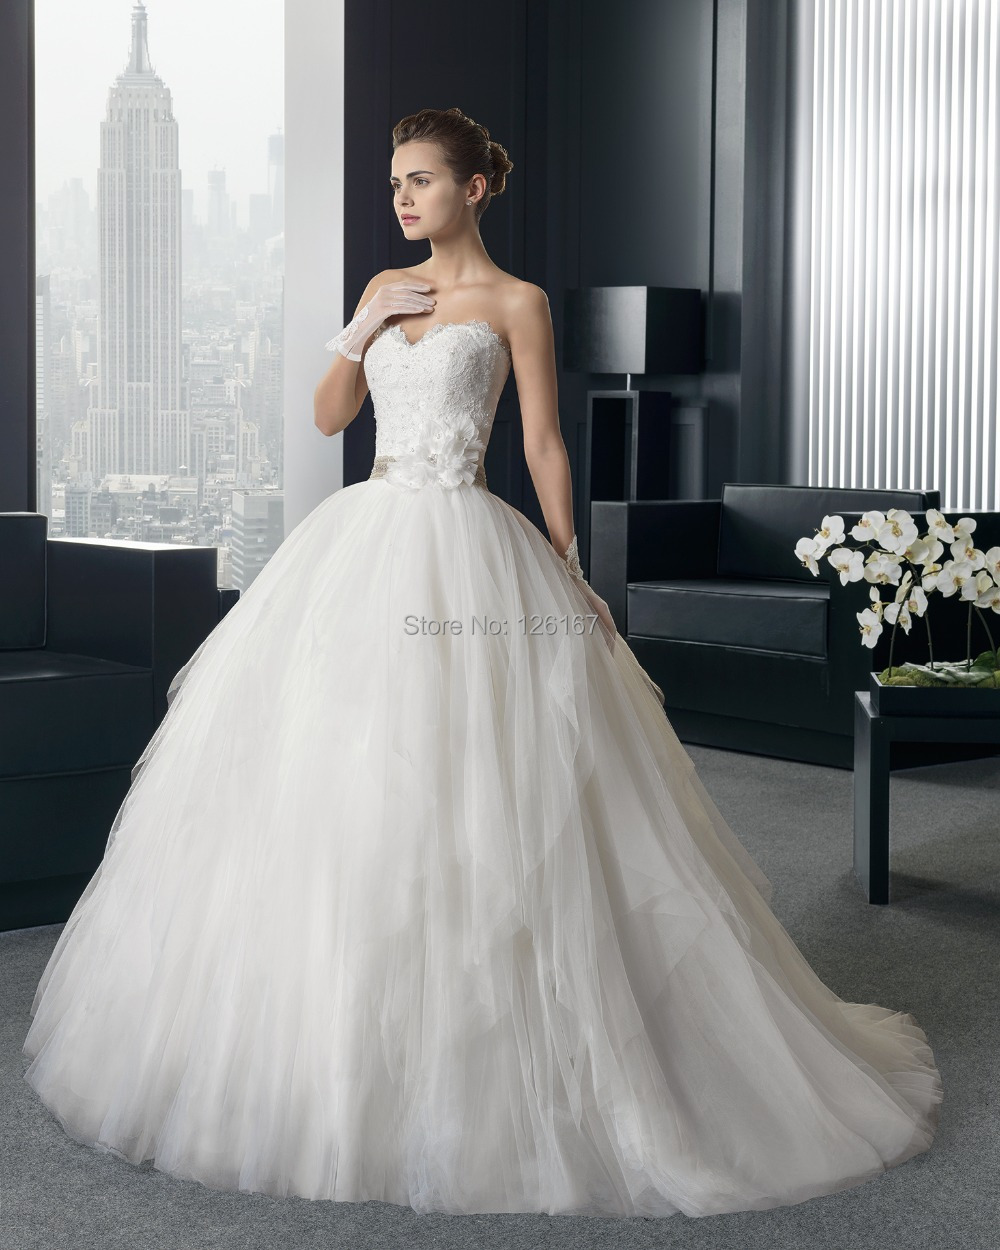 Wholesale Price Lace Pleat Tulle Handwork Flowers Fluffy Wedding ...